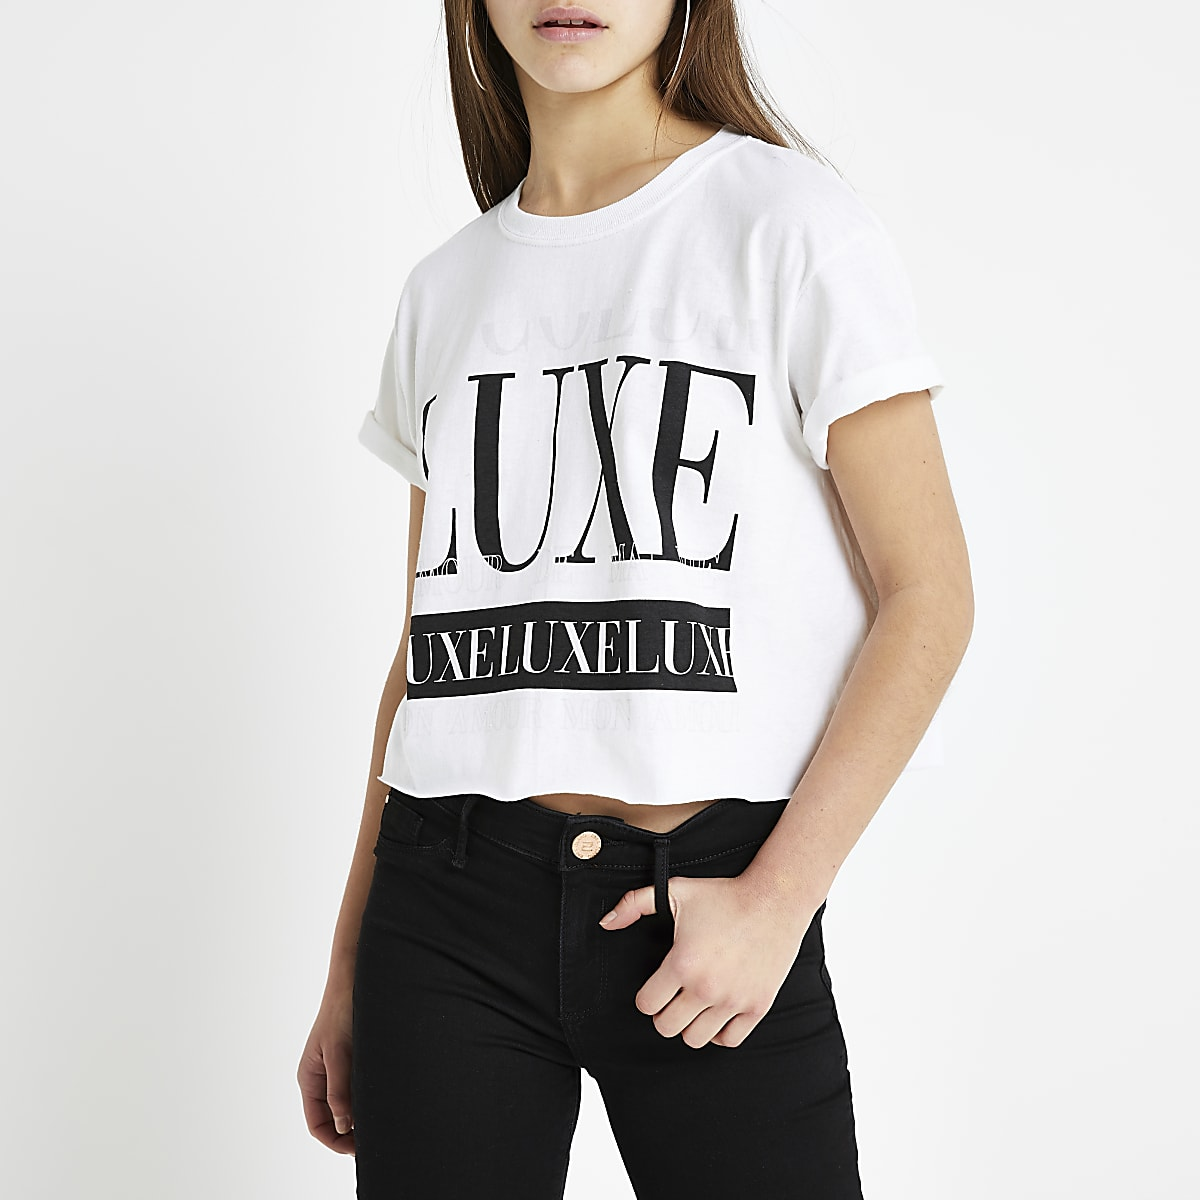 8a299f1f7f8 Petite white 'luxe' print cropped T-shirt - T-Shirts - Tops - women